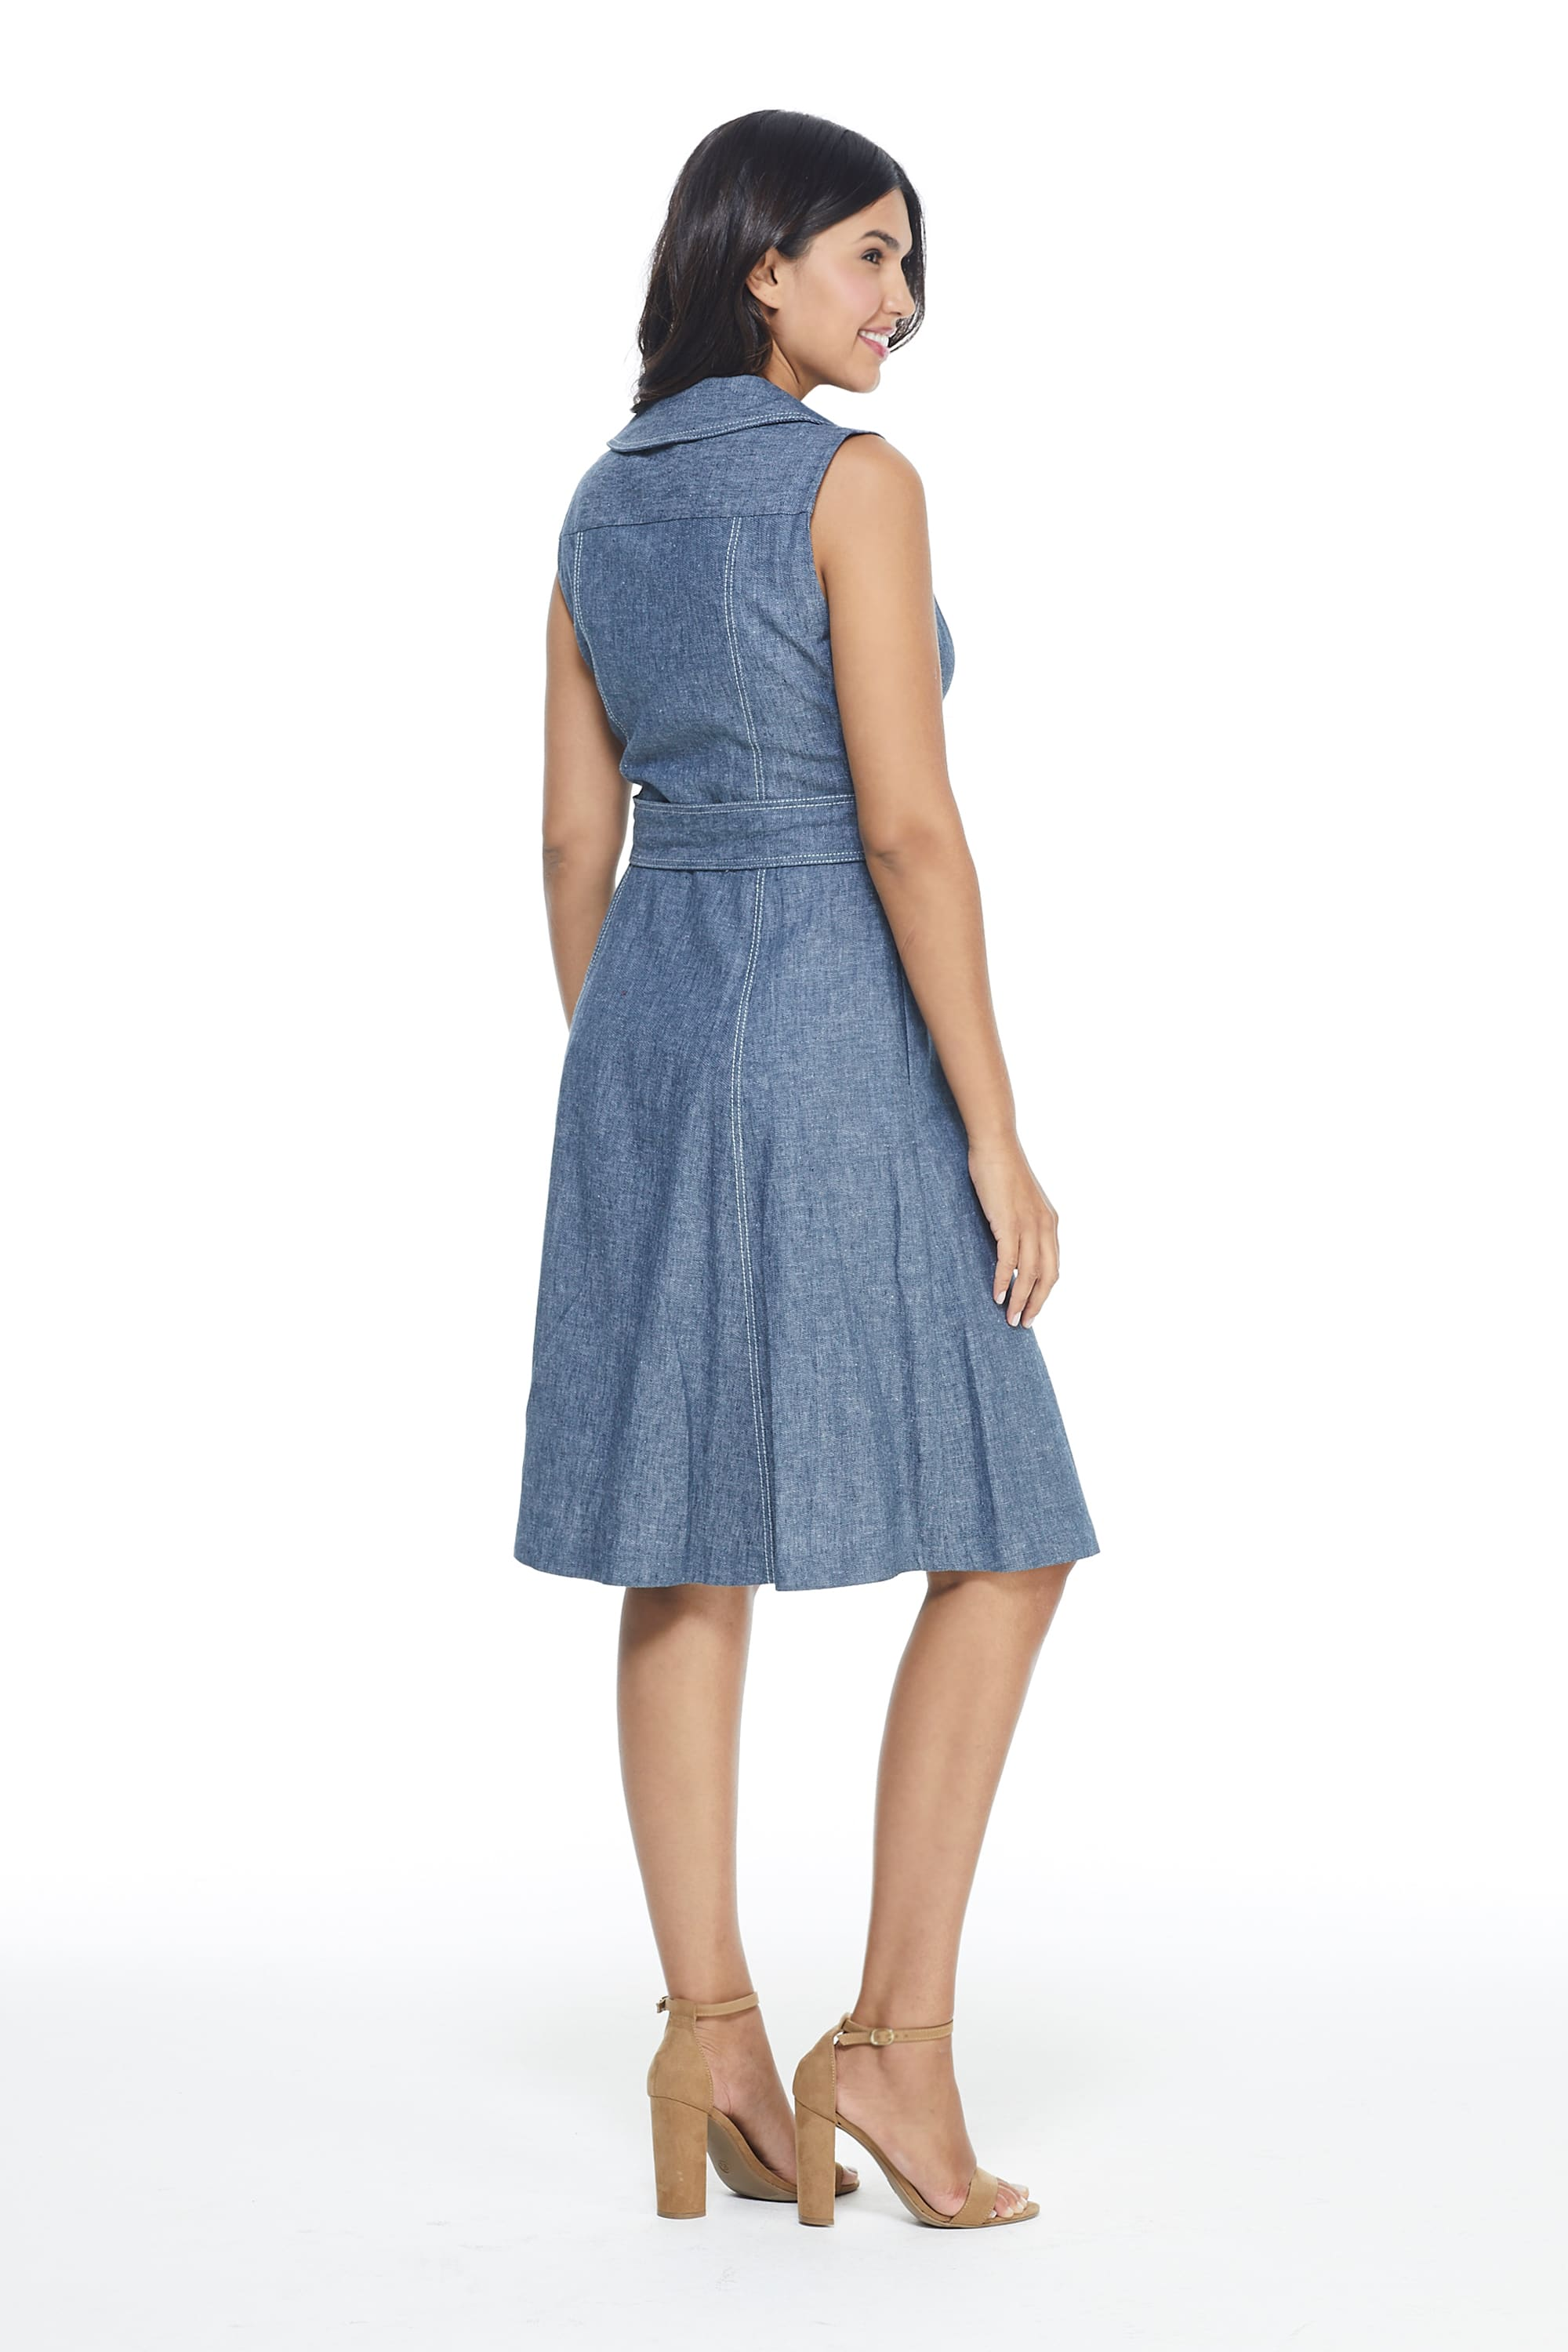 Maggy London Laura Dress - Misses - Denim - Back